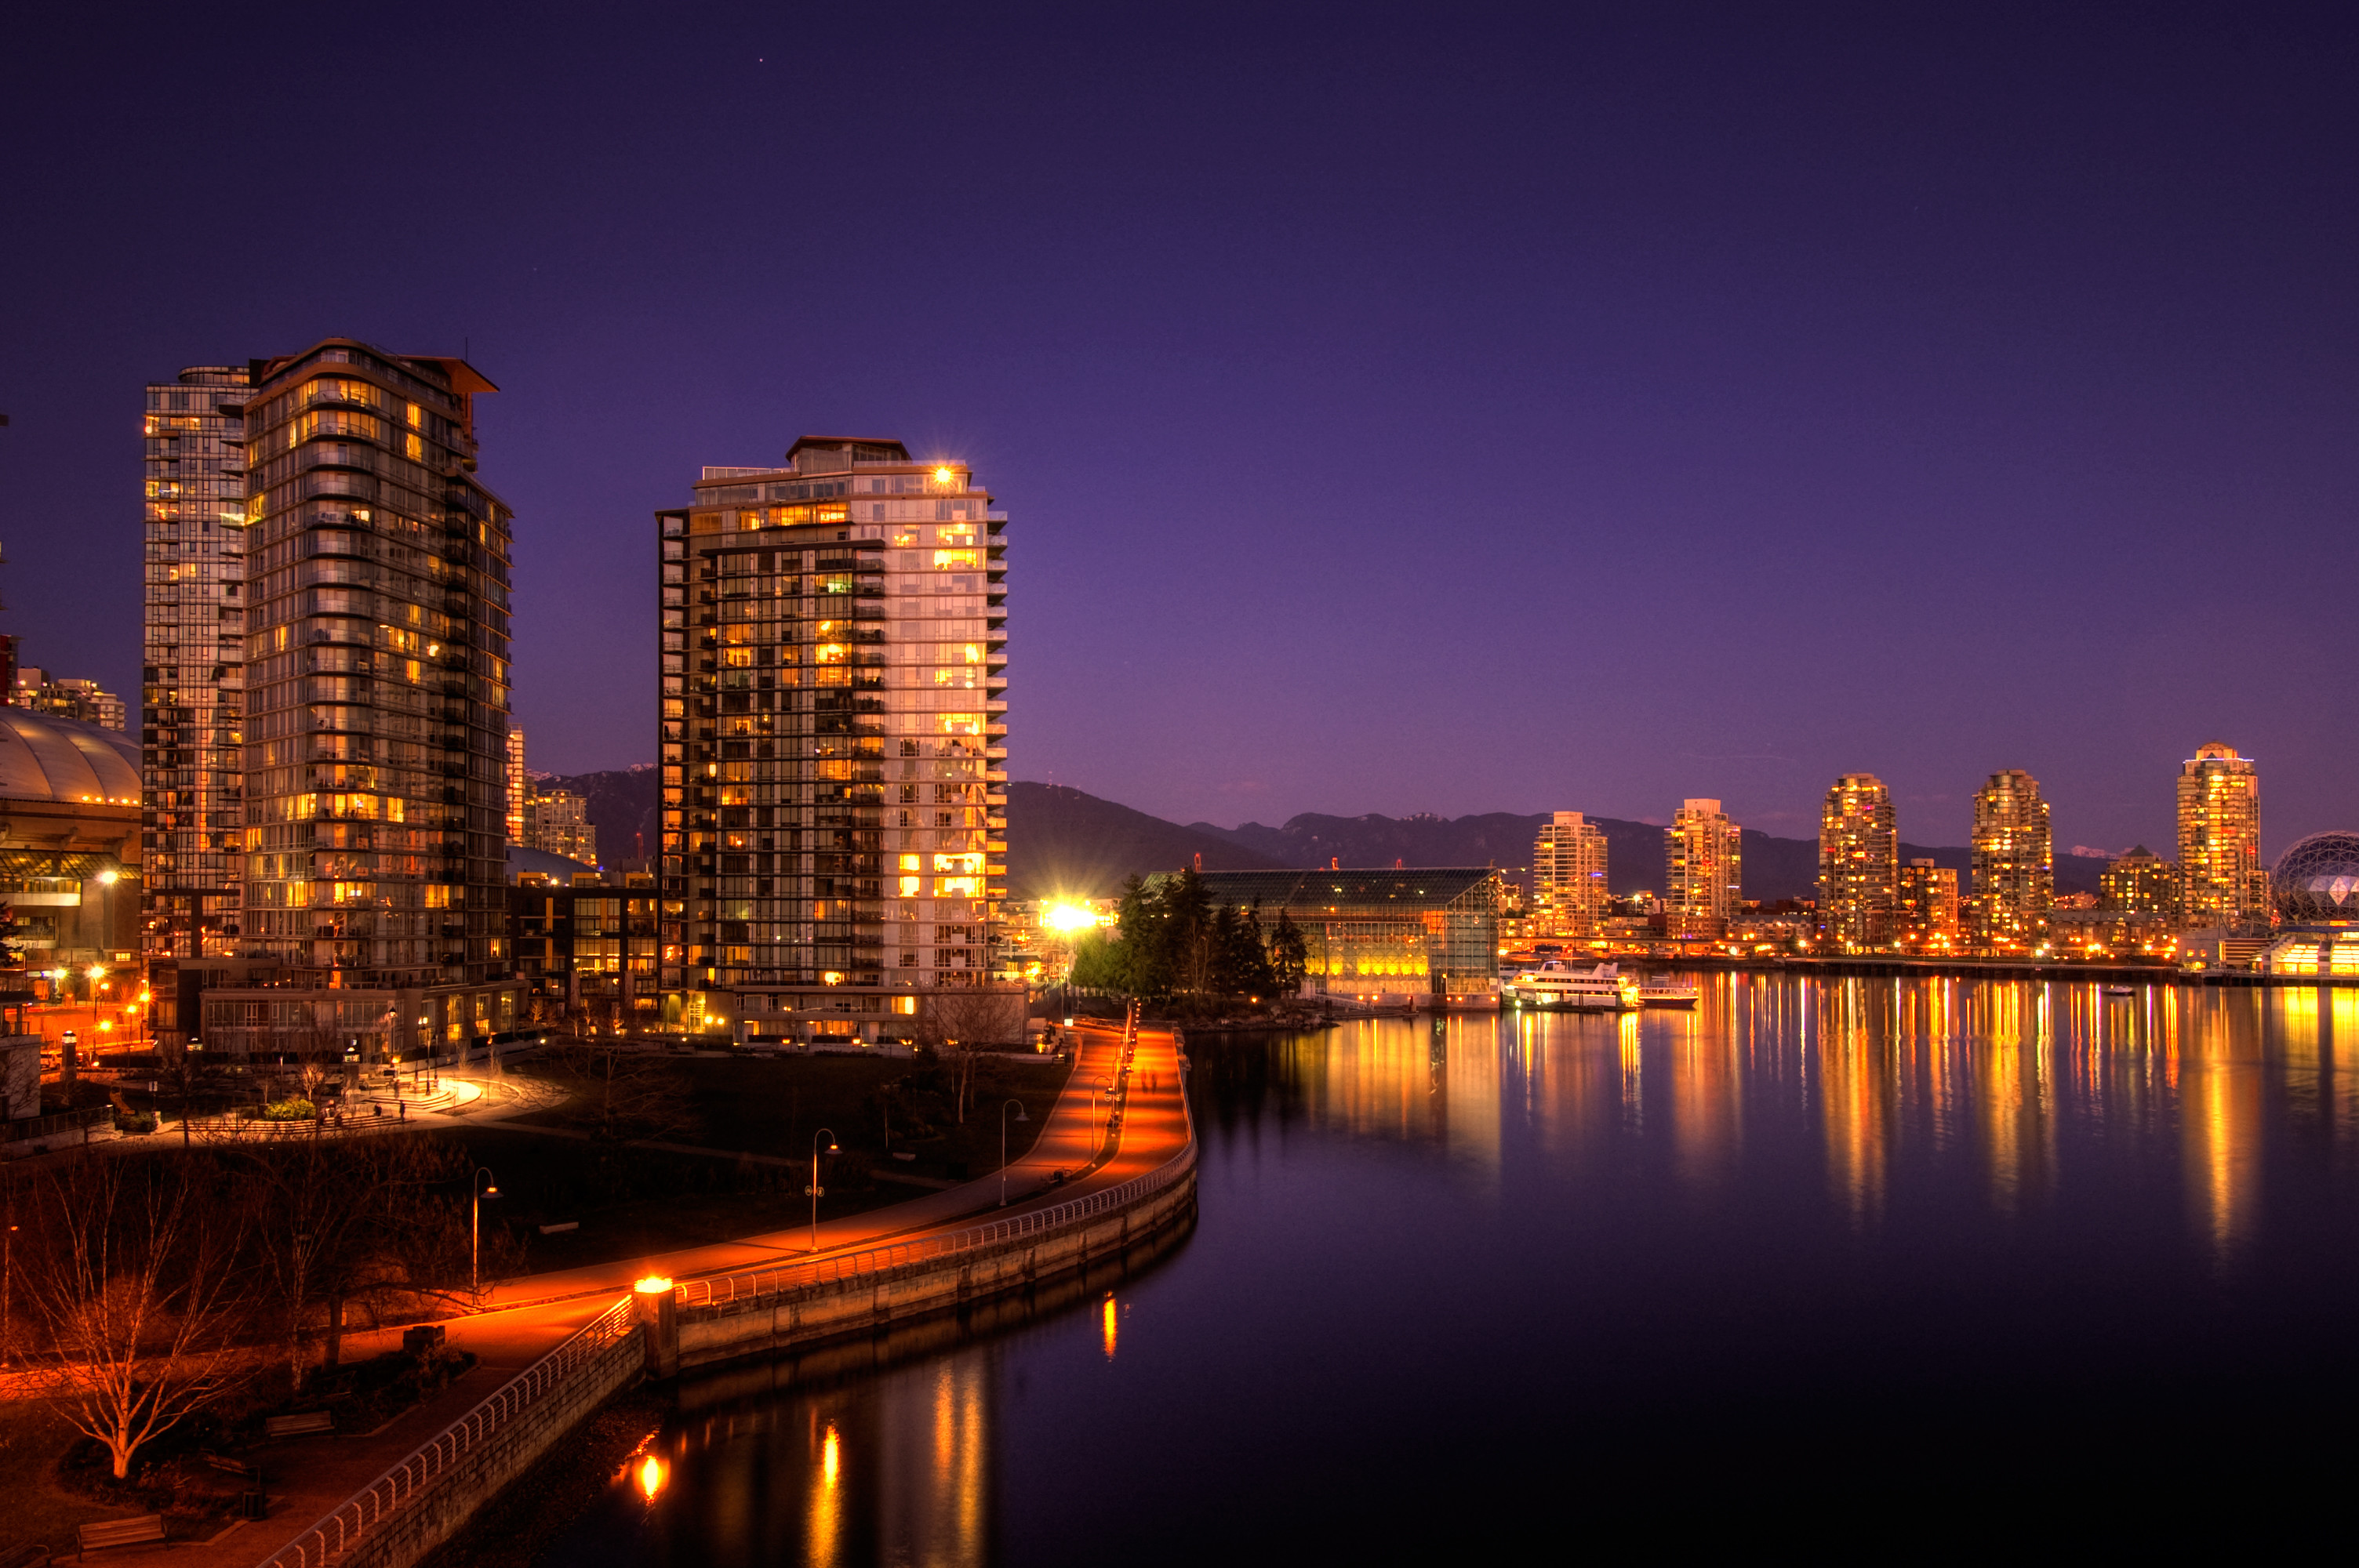 3008x2000 Daily Wallpaper: Vancouver, False Creek [Exclusive] | I Like To Waste My  Time